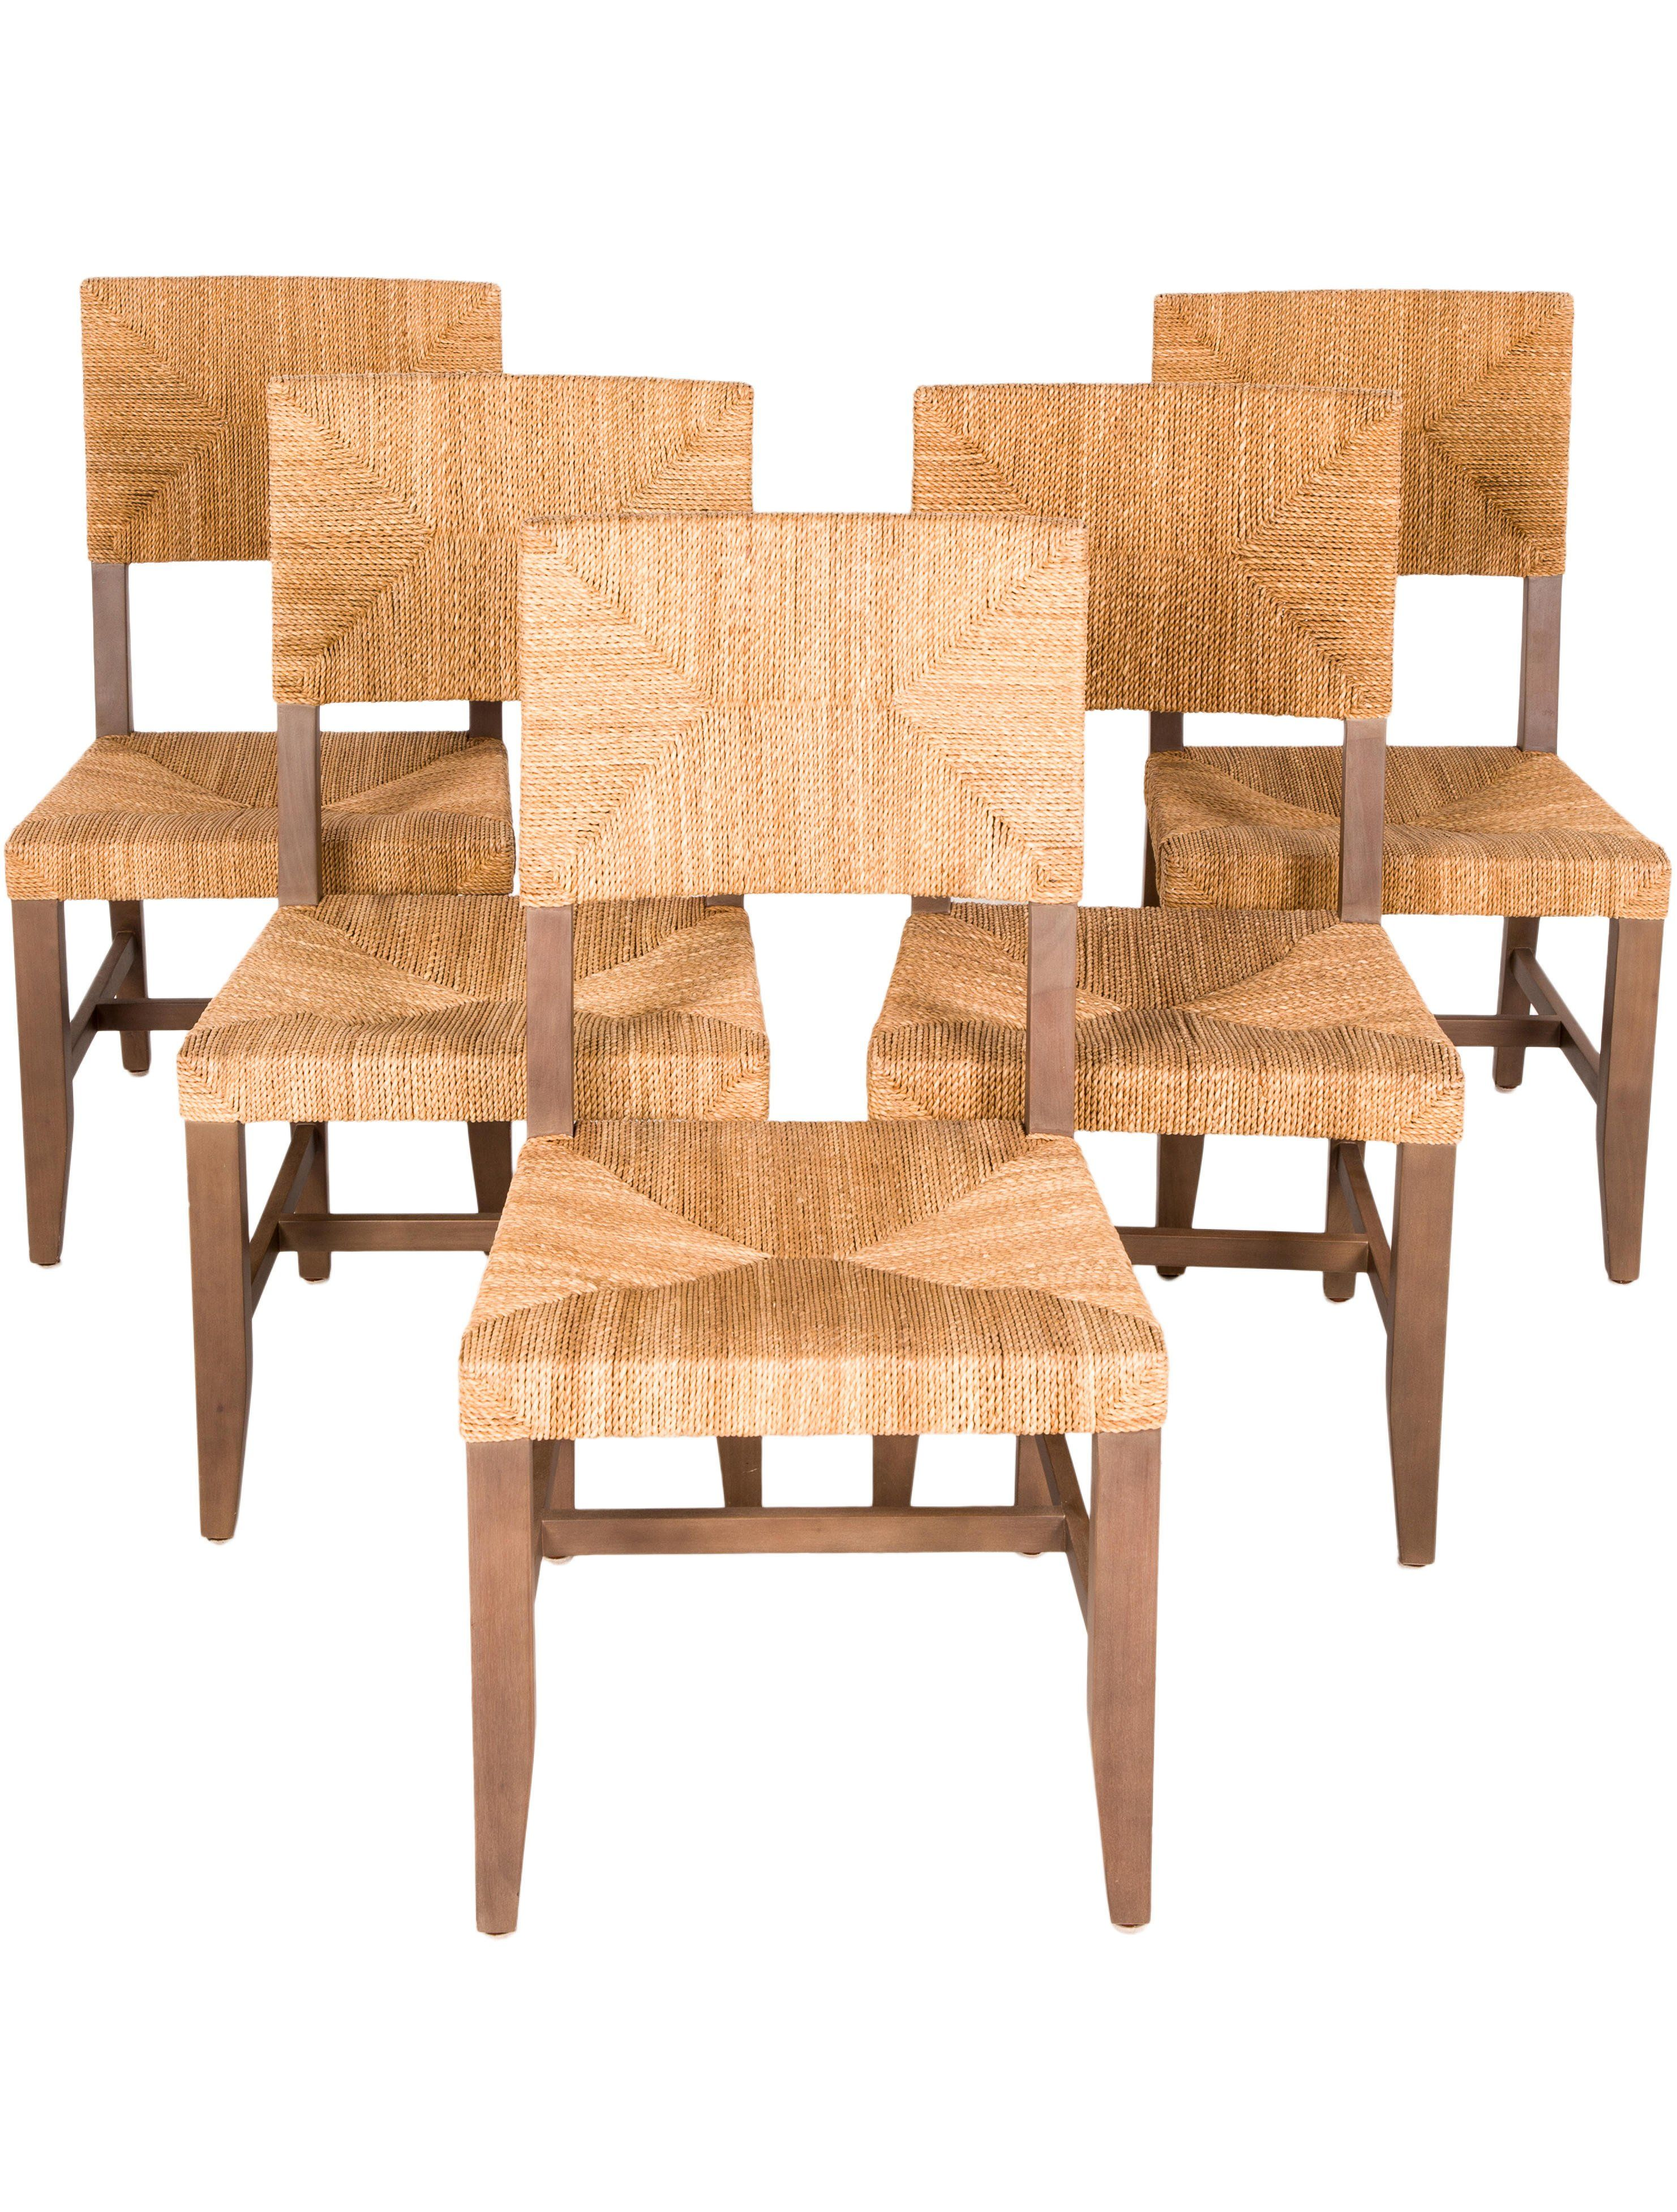 Set of 5 dark brown wood contemporary style chairs with rush fiber weave construction at